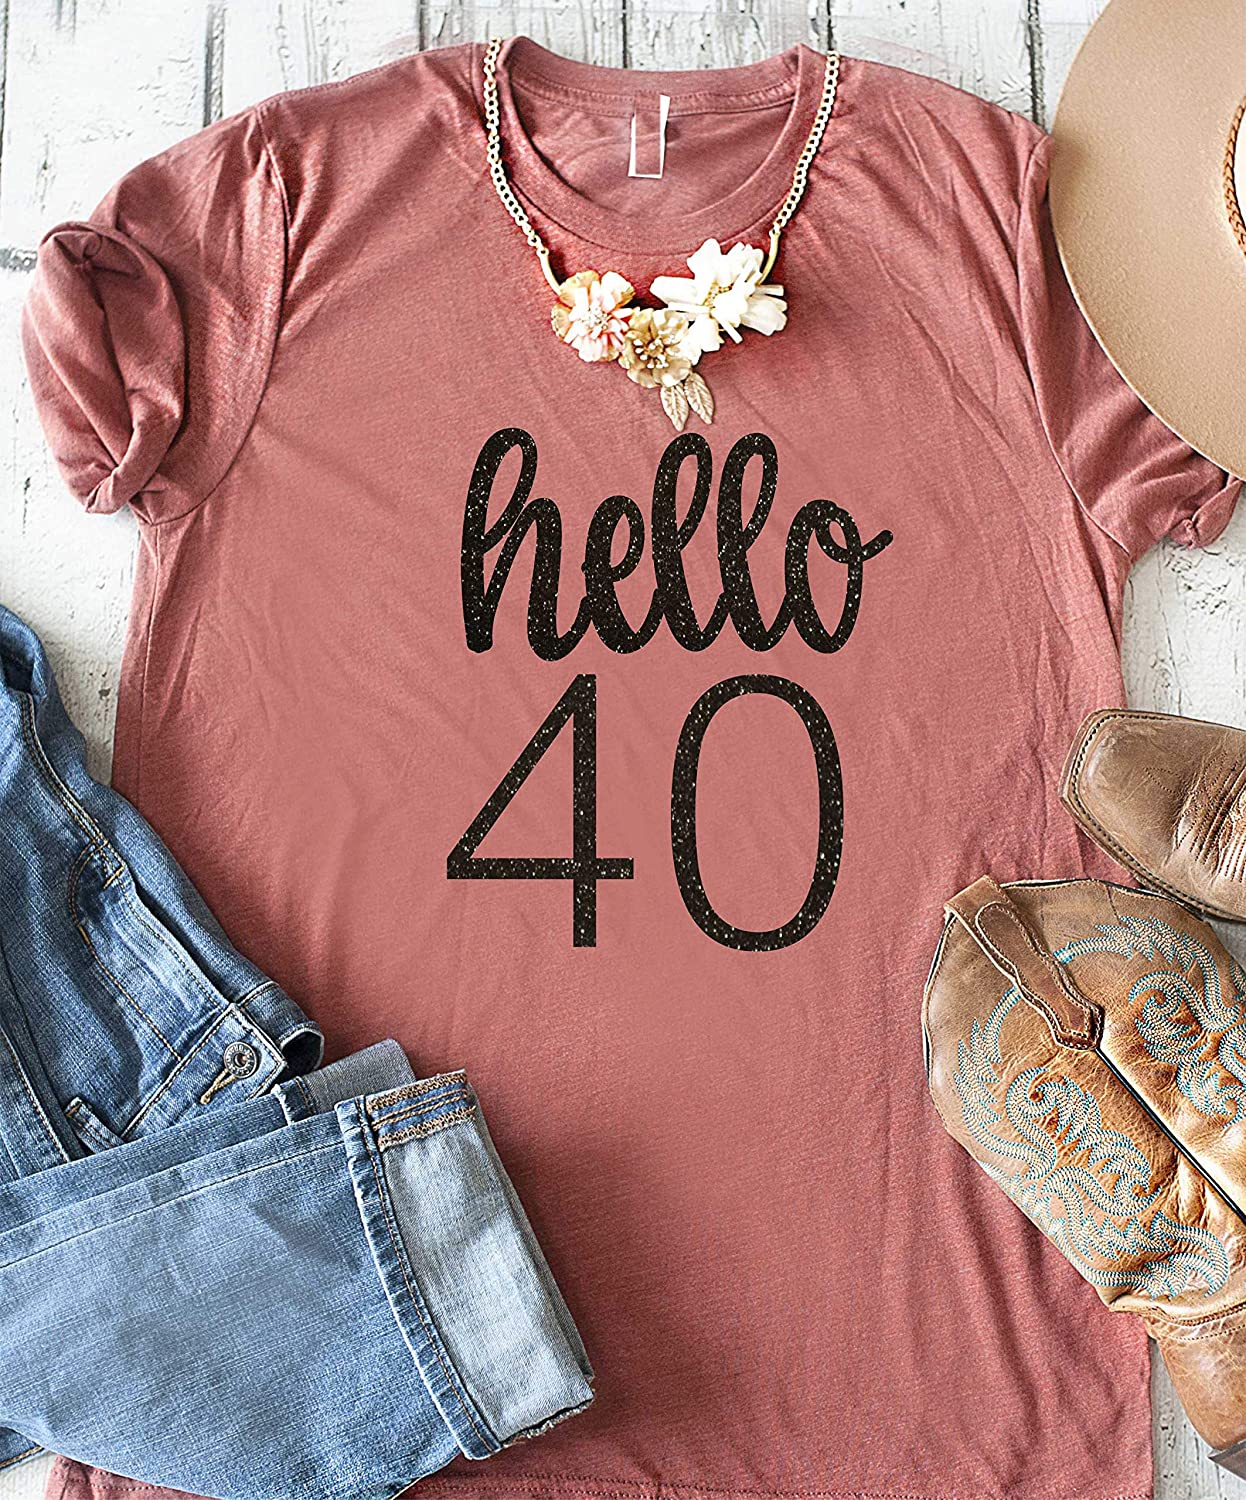 a82d7aaa8e8c3 40th birthday shirt for women, ladies forty birthday t-shirt, Cute birthday  squad shirts, glitter party tees